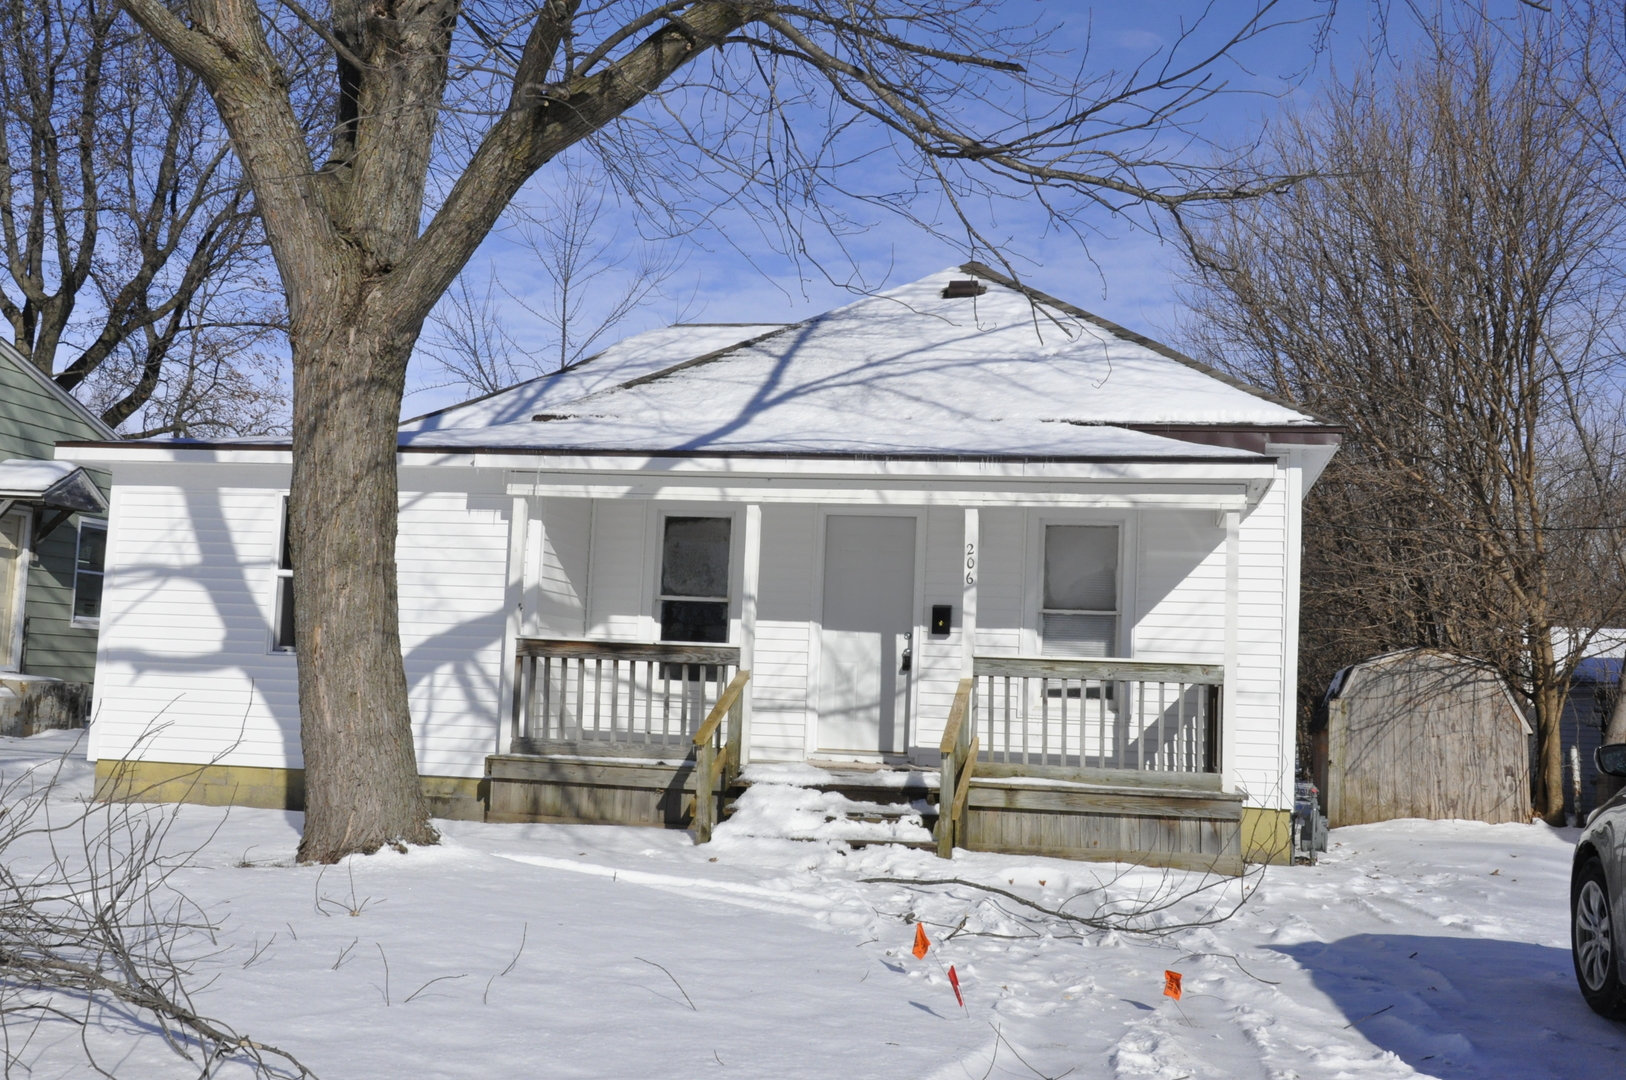 206 East Grant, Streator, Illinois, 61364